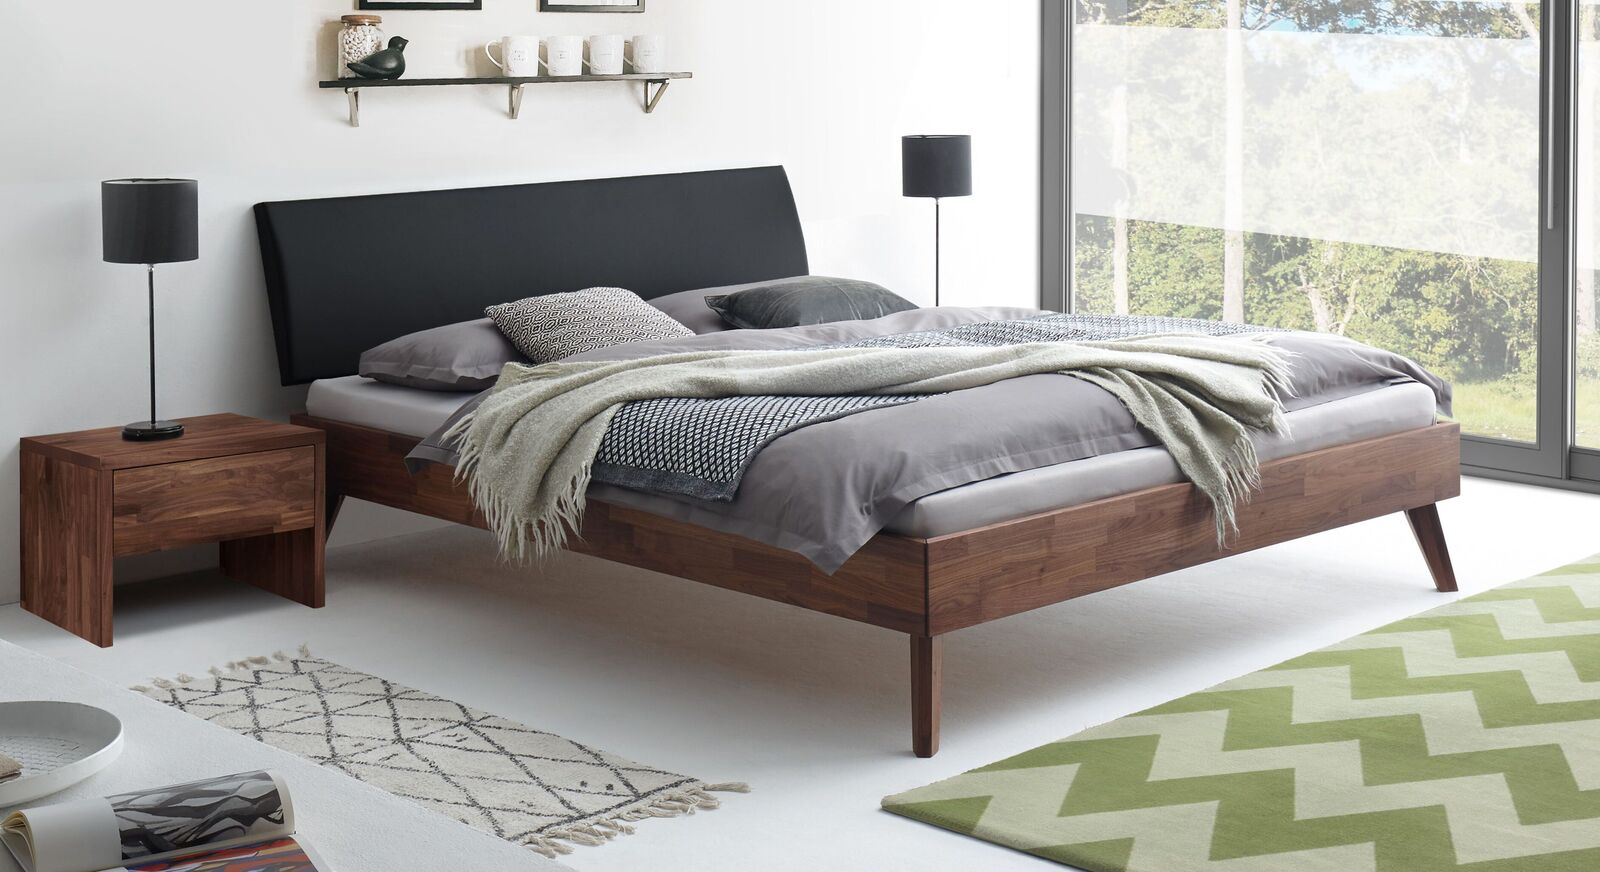 Bett Carman in angesagtem Retro-Design